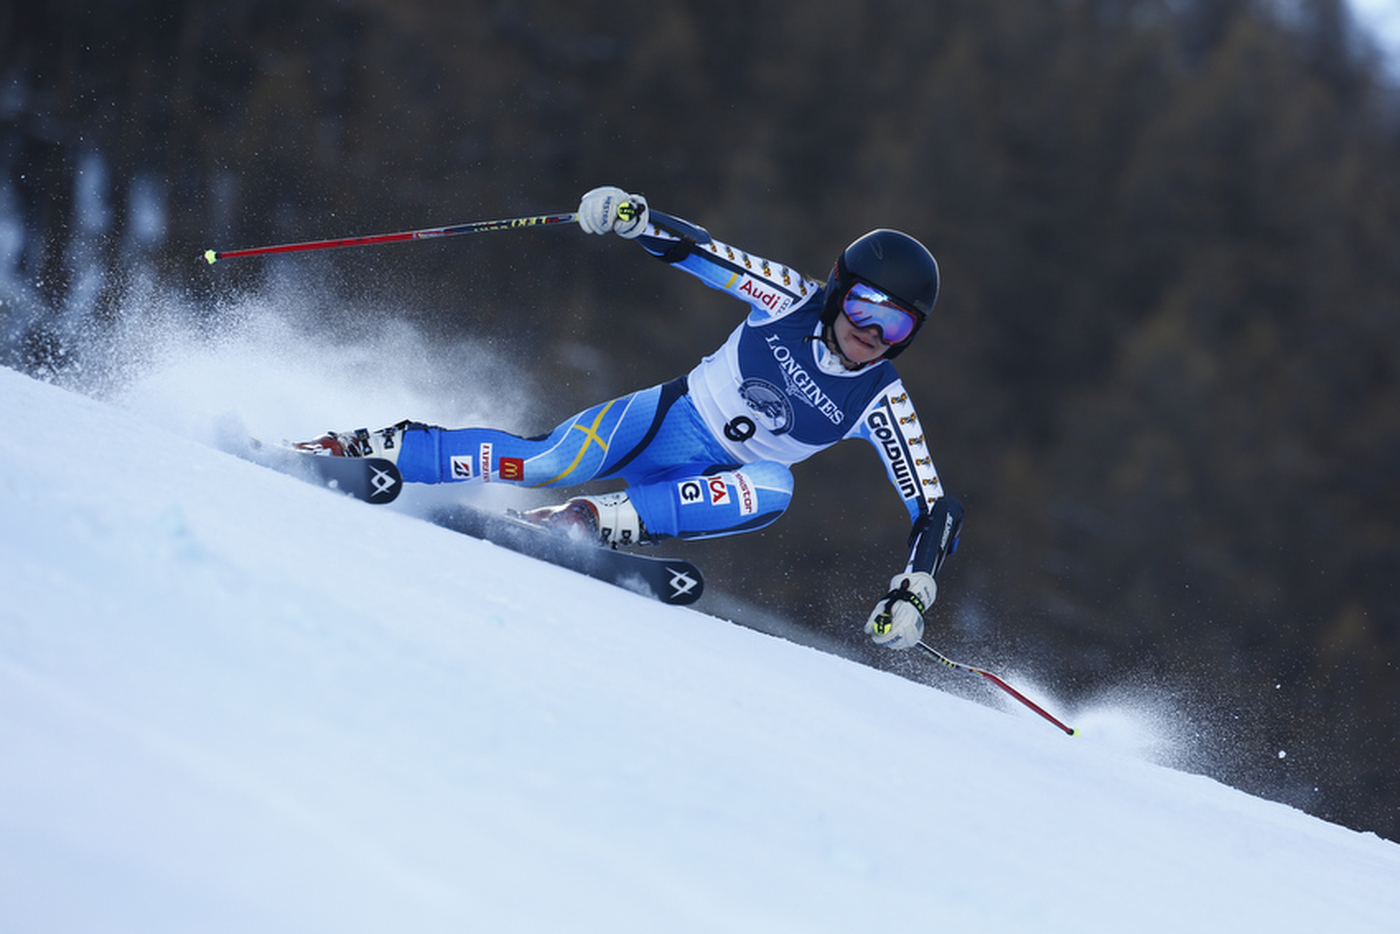 Longines Alpine Skiing Event: Second edition of the Longines Future Ski Champions – A successful 100% female competition in Val d'Isère 27